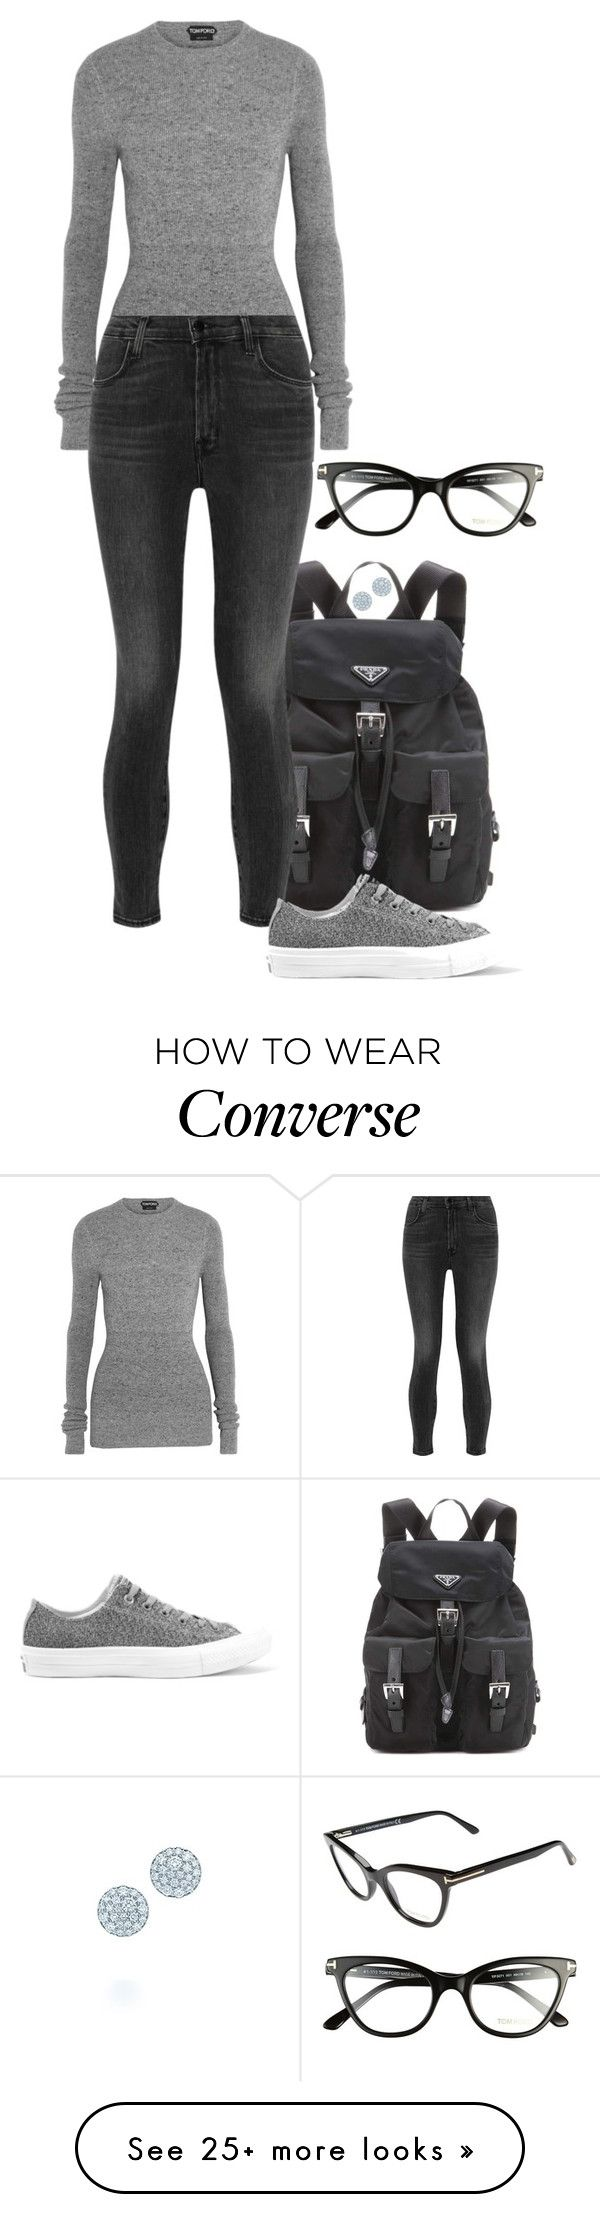 """""""Mesh II."""" by foreverforbiddenromancefashion on Polyvore featuring Prada, Tom Ford, J Brand, Converse and Tiffany & Co."""